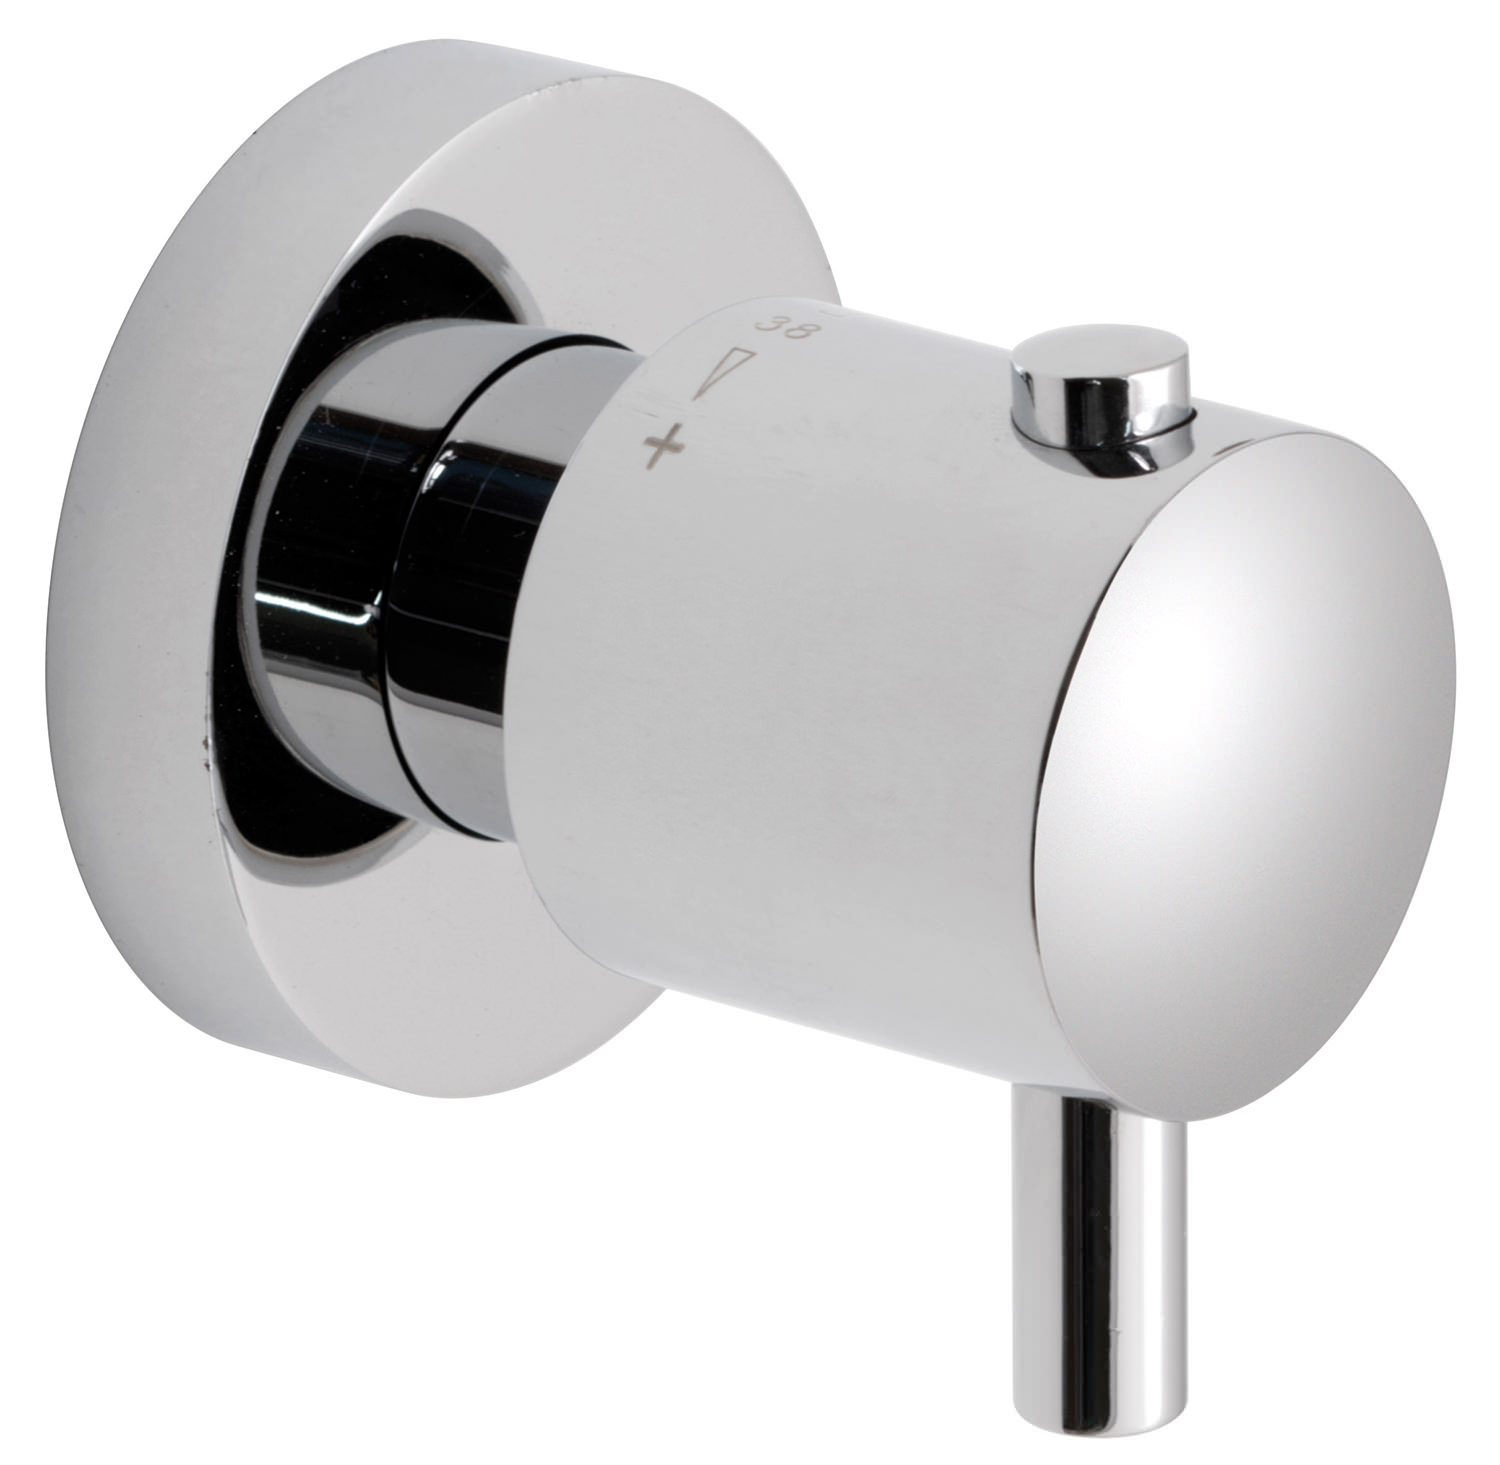 Vado Celsius Wall Mounted Concealed Thermostatic Mixing